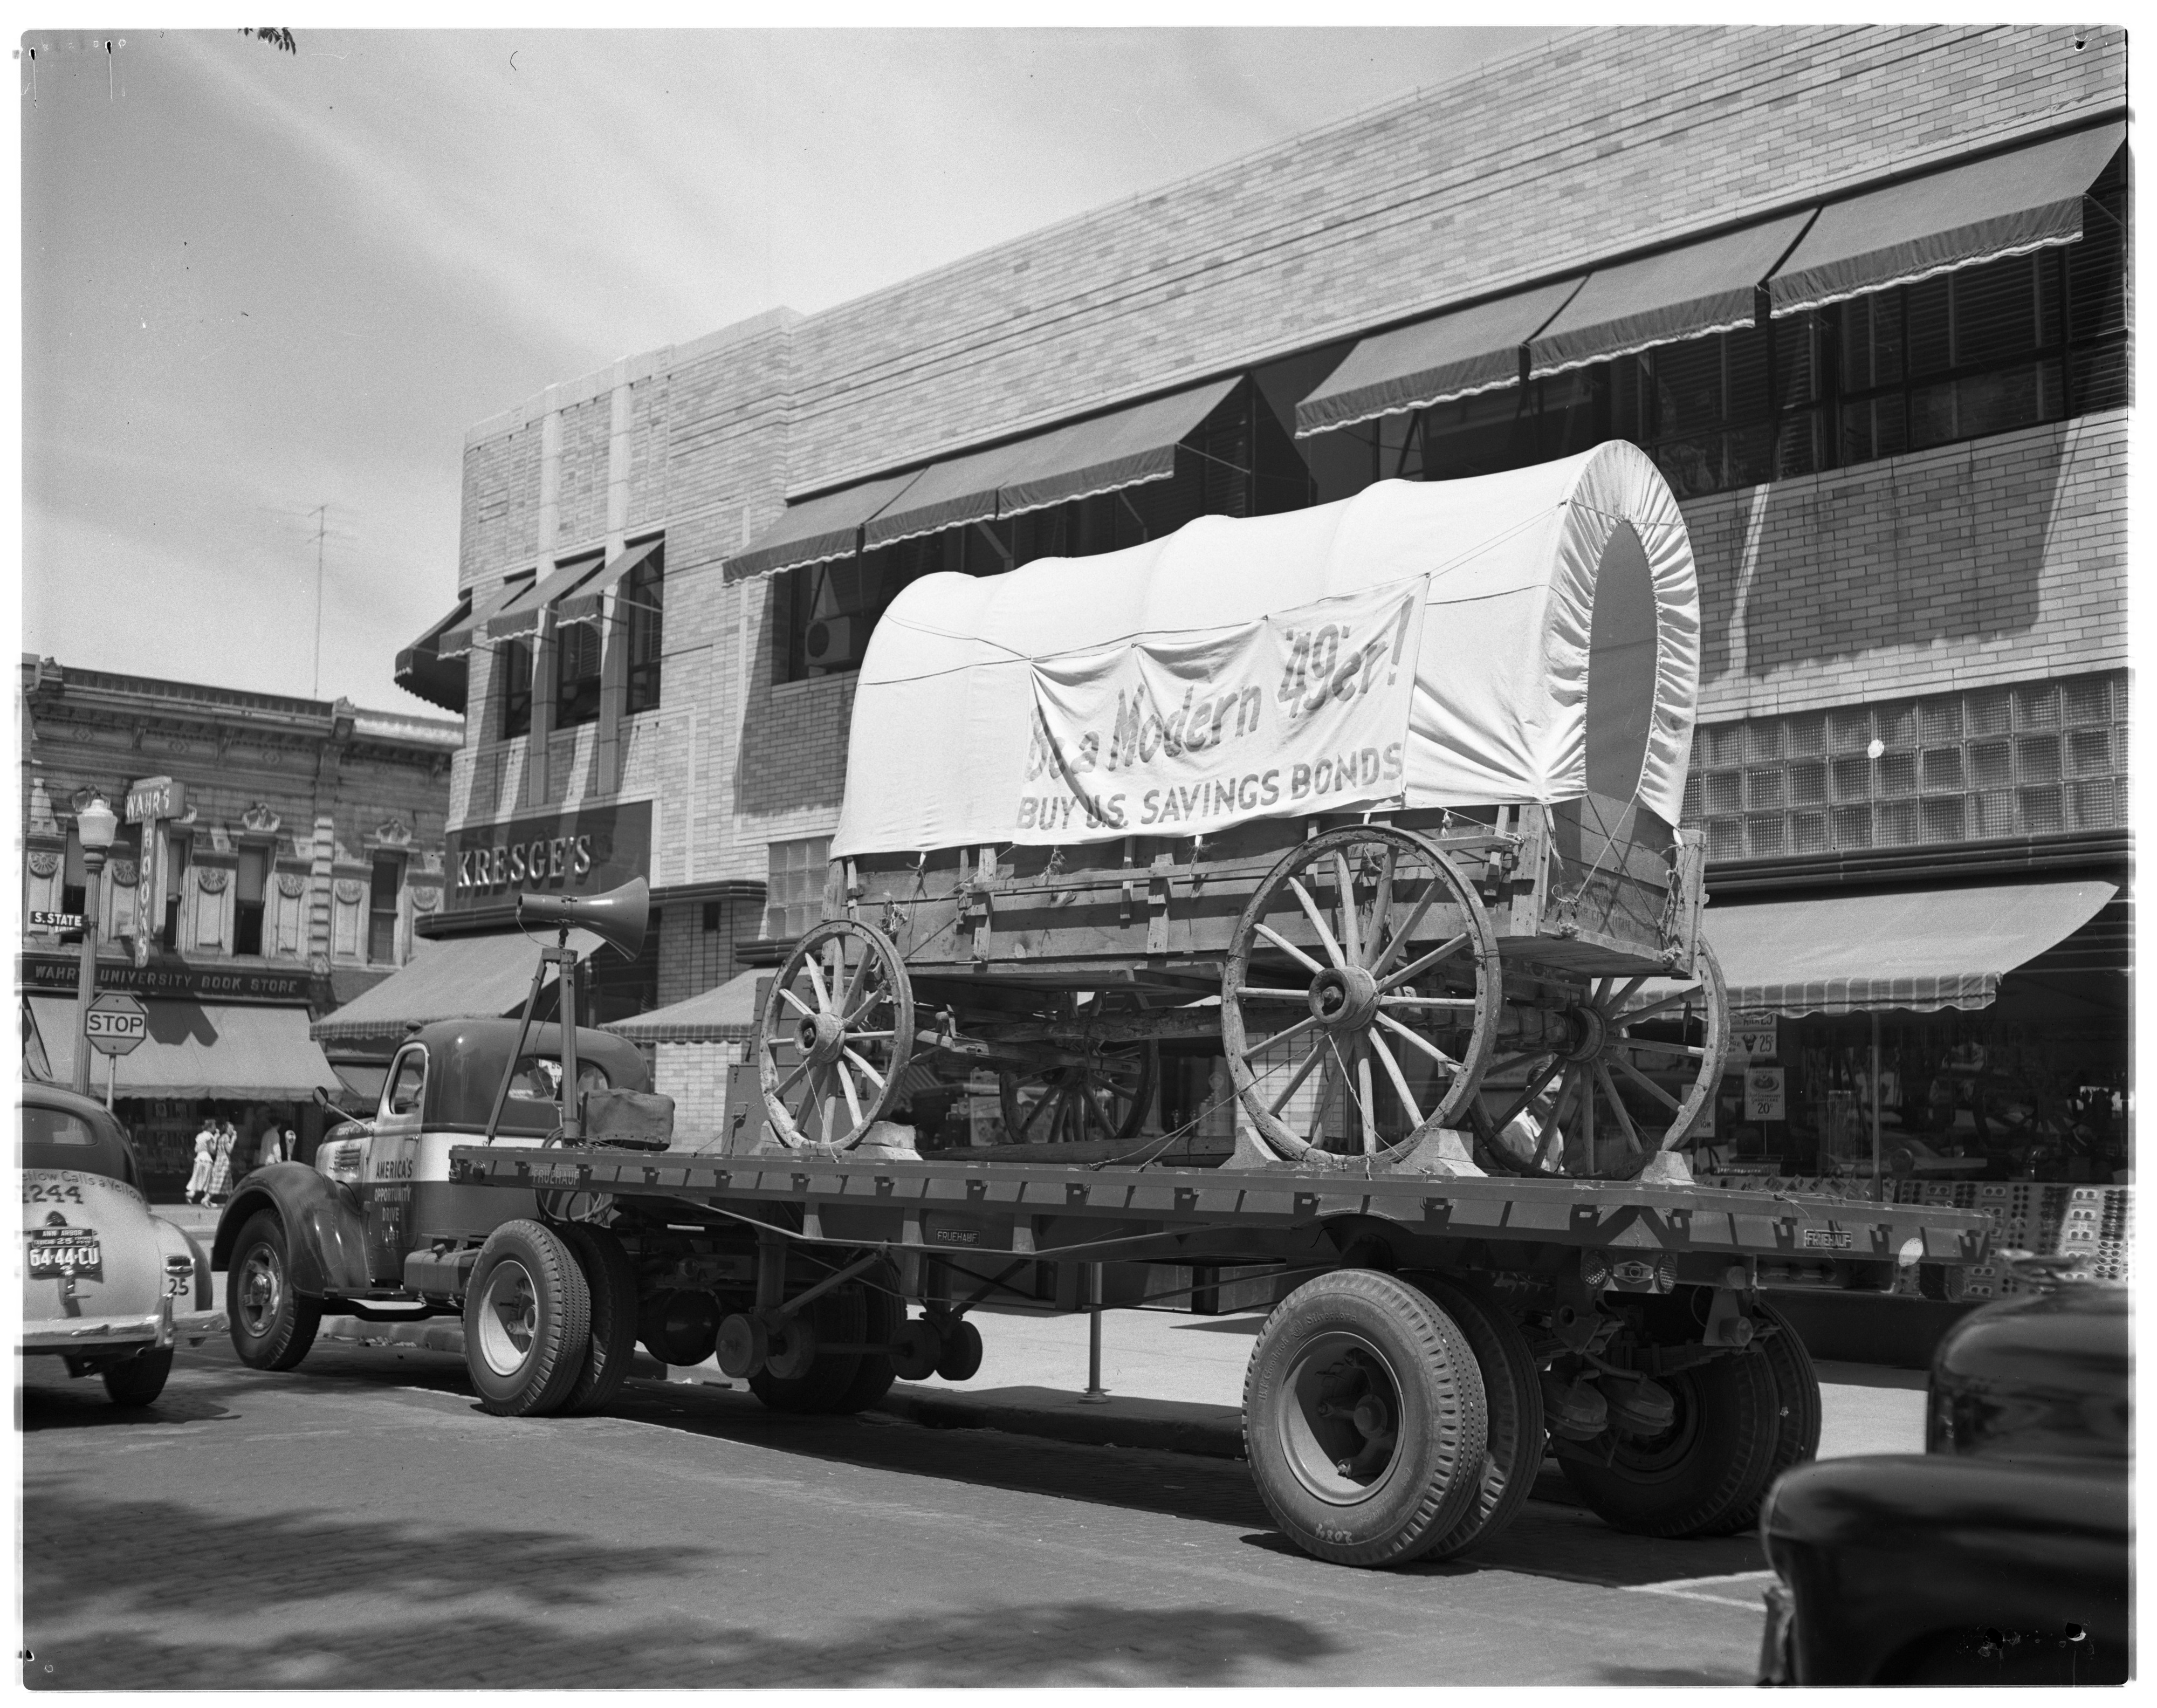 Bond Drive, Covered Wagon, June 1949 image